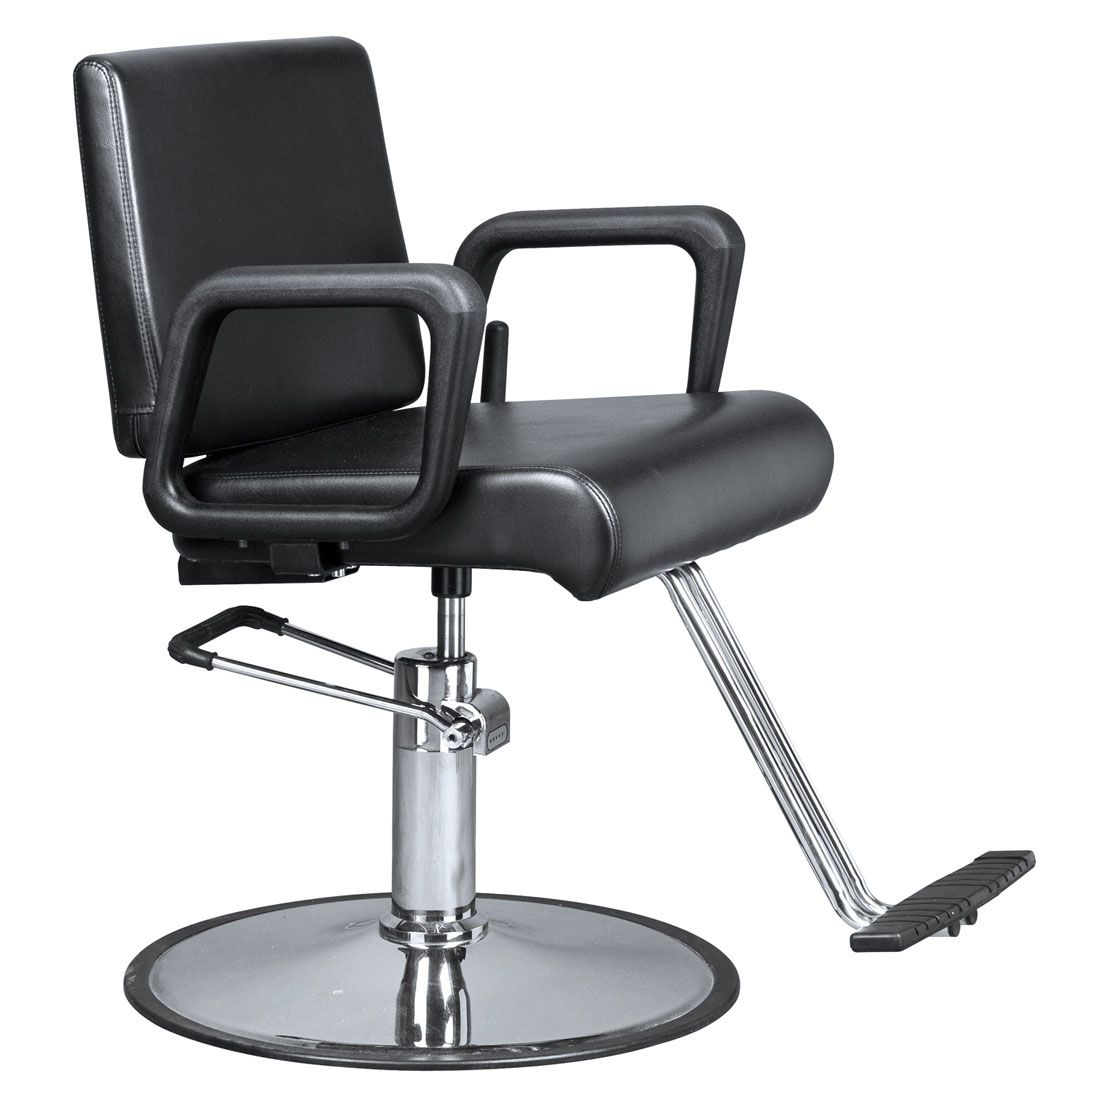 Beautiful Hair Salon Furniture Cheap #7: 1000+ Images About Styling Chairs On Pinterest   Salon Equipment, Reception Desks And Pedicures